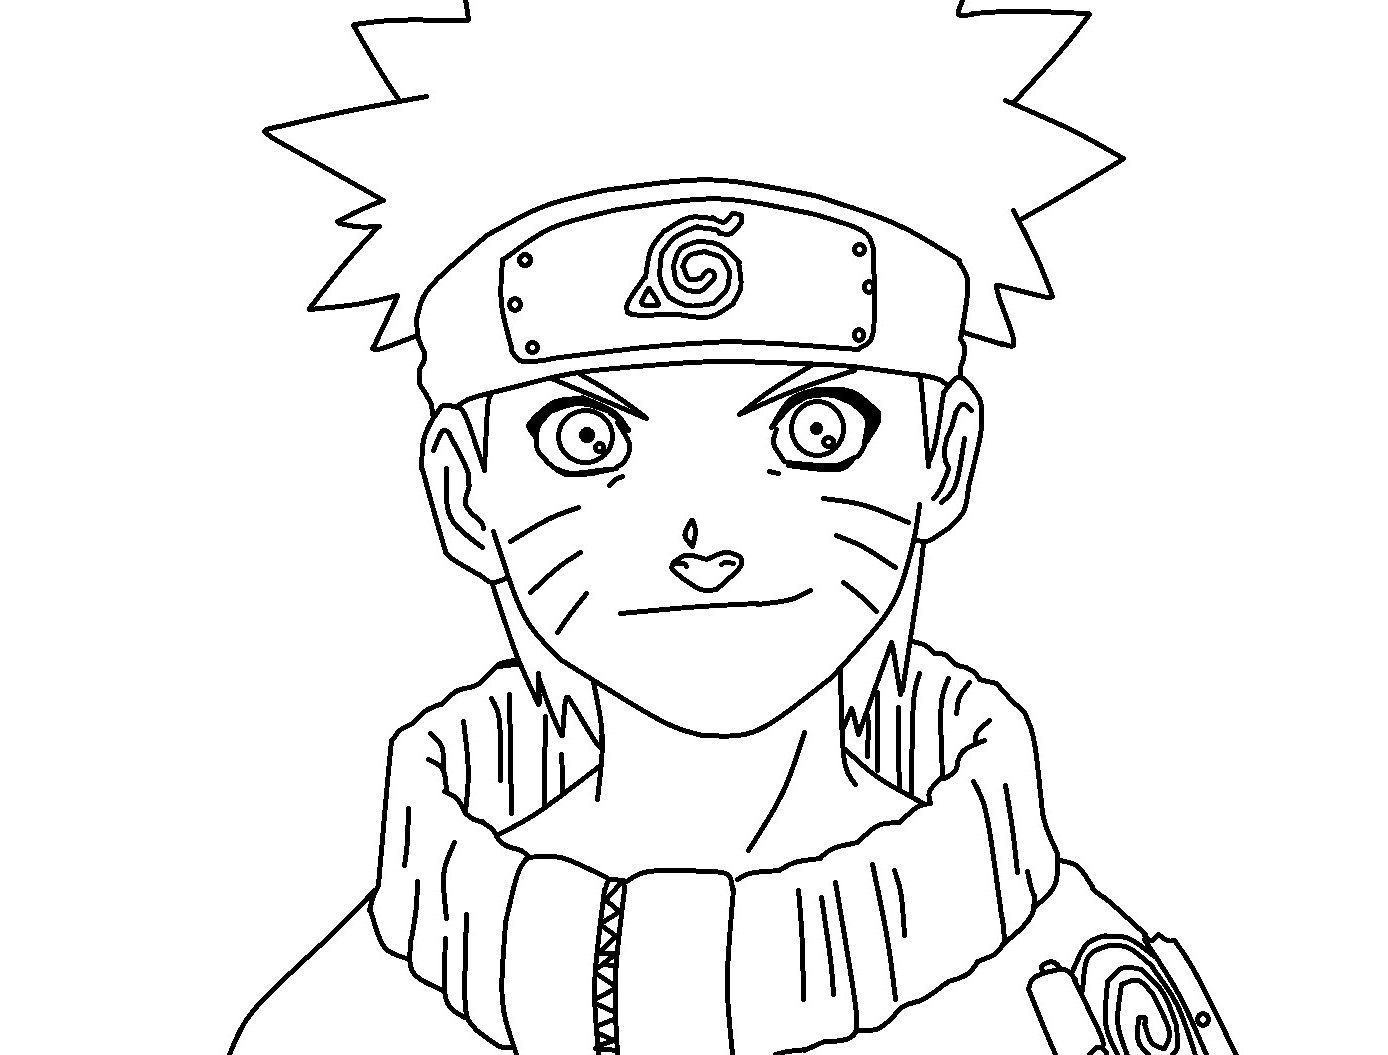 naruto coloring pages 01 | Places to Visit | Pinterest